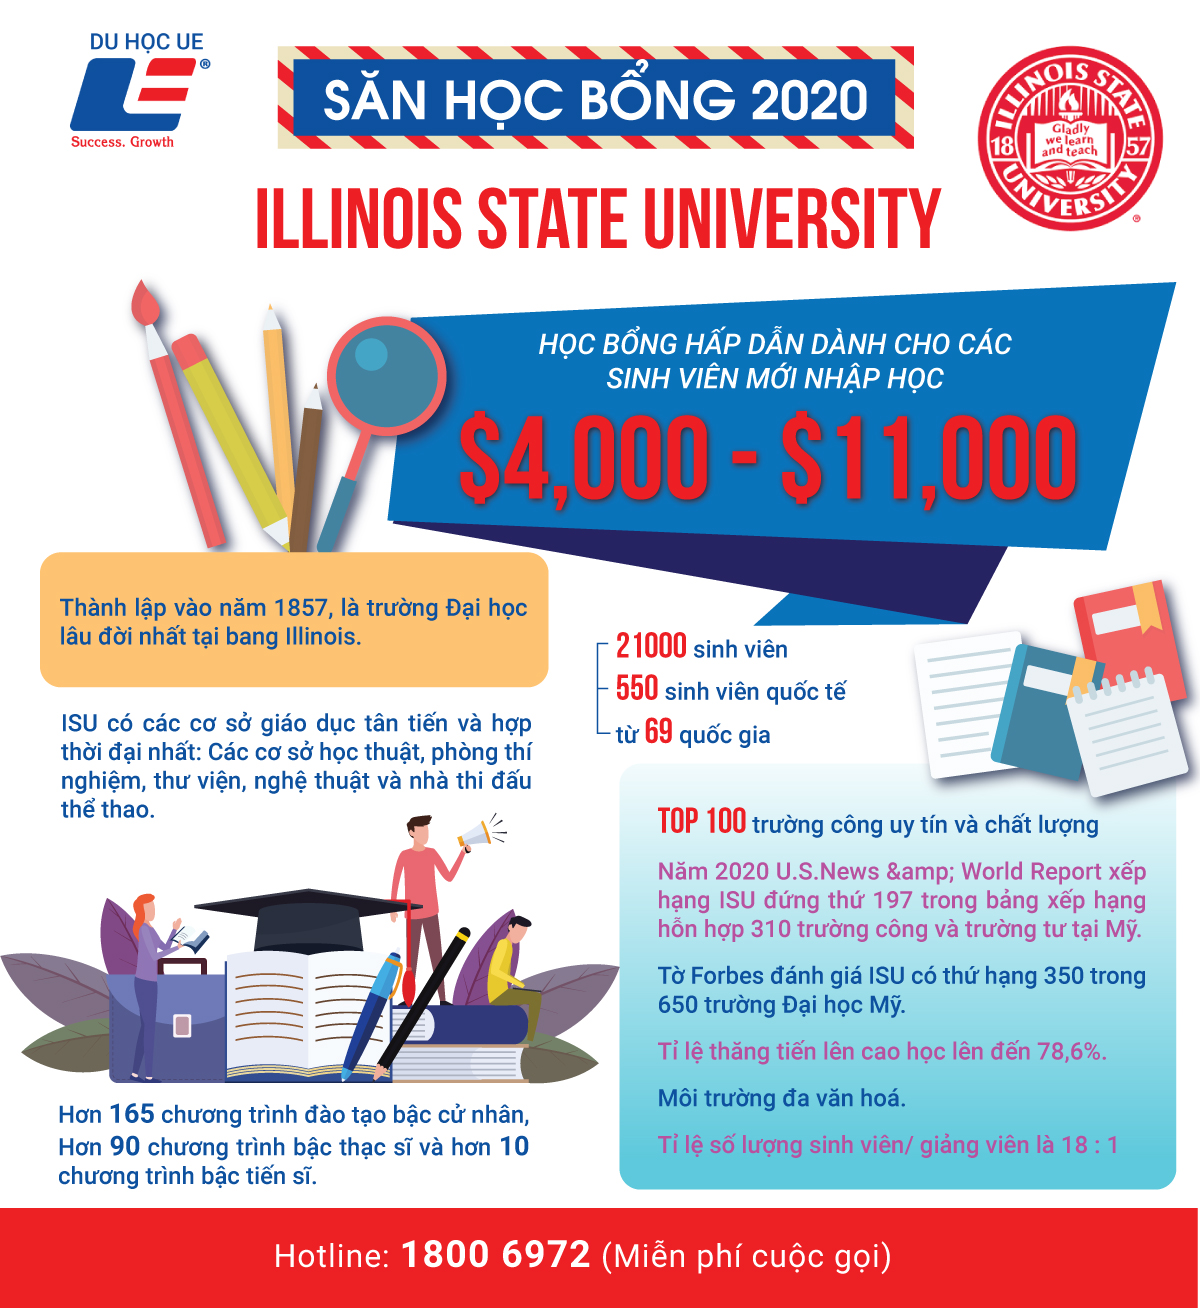 Illinois State University - Du học UE